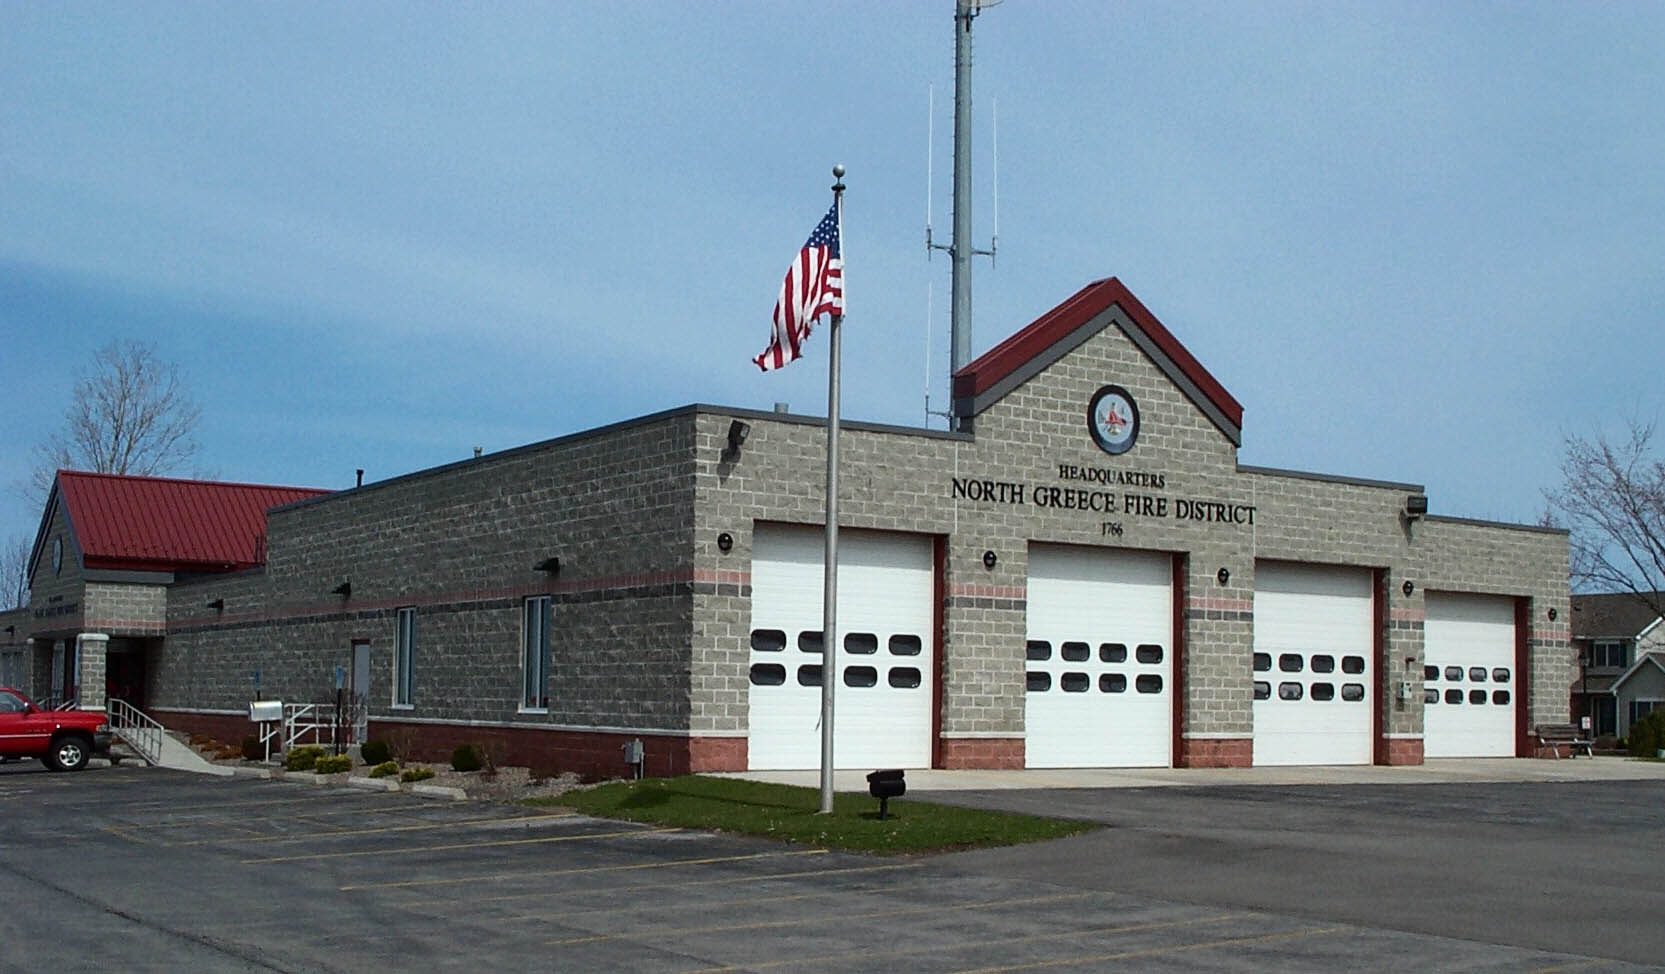 North greece fire district stations apparatus